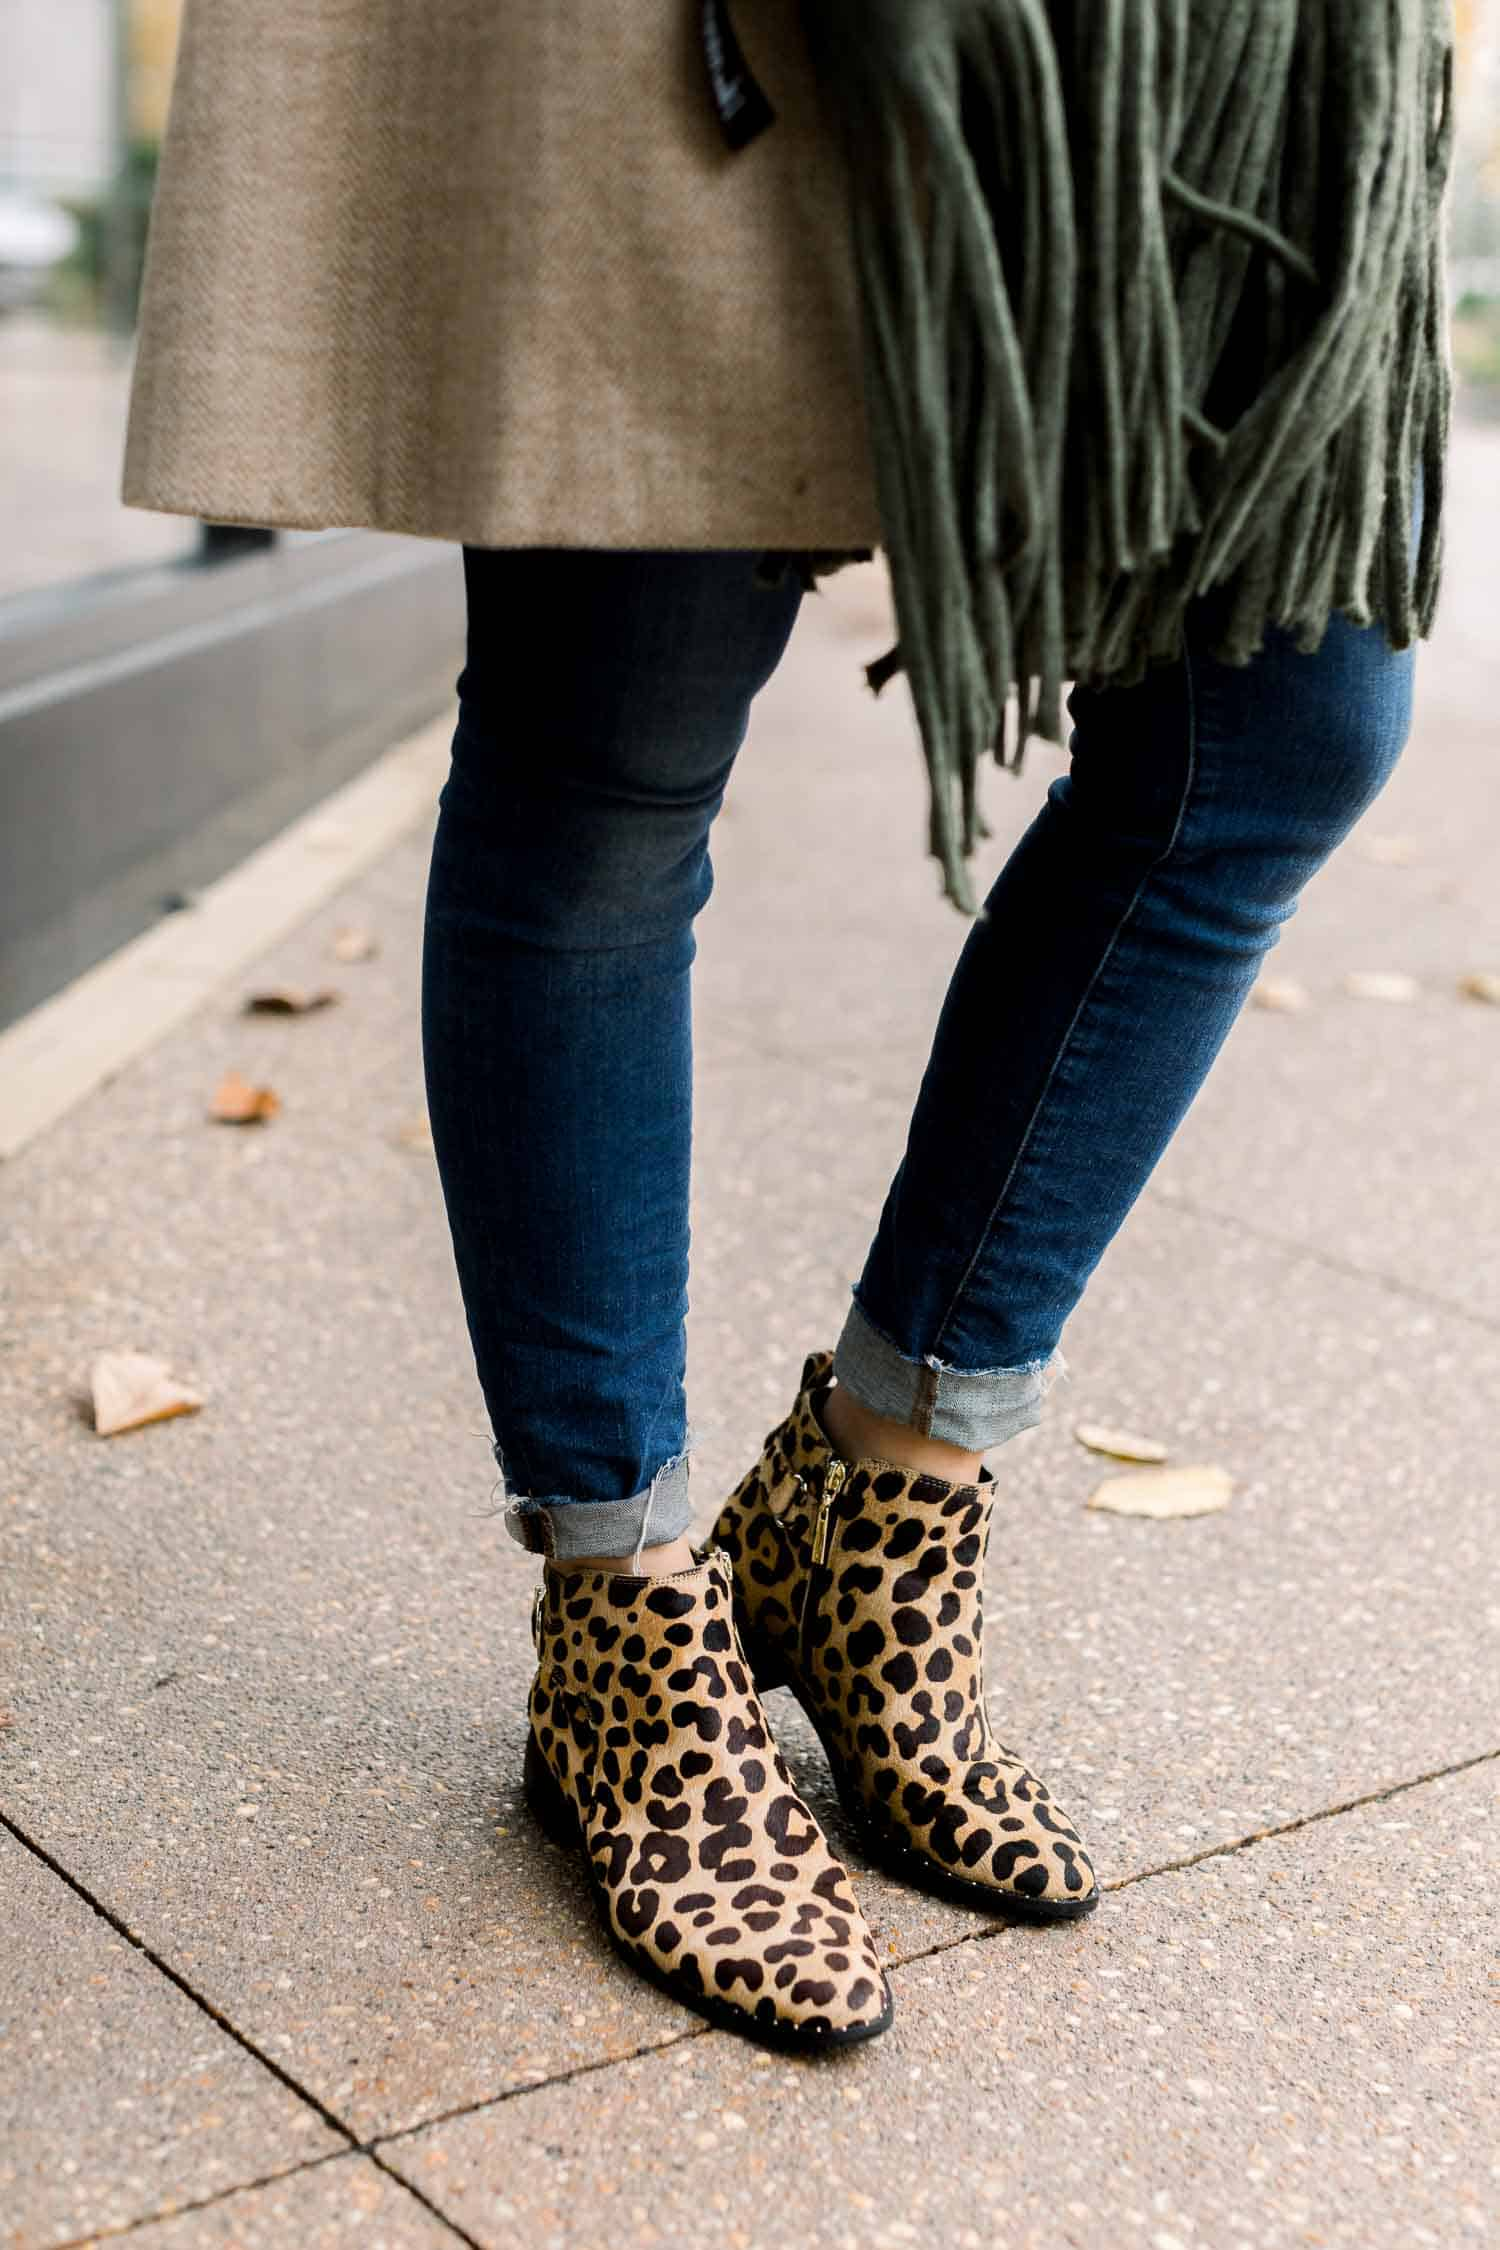 Jessica's Outfit: Madewell Jeans • Steven Leopard Booties - ON SALE!